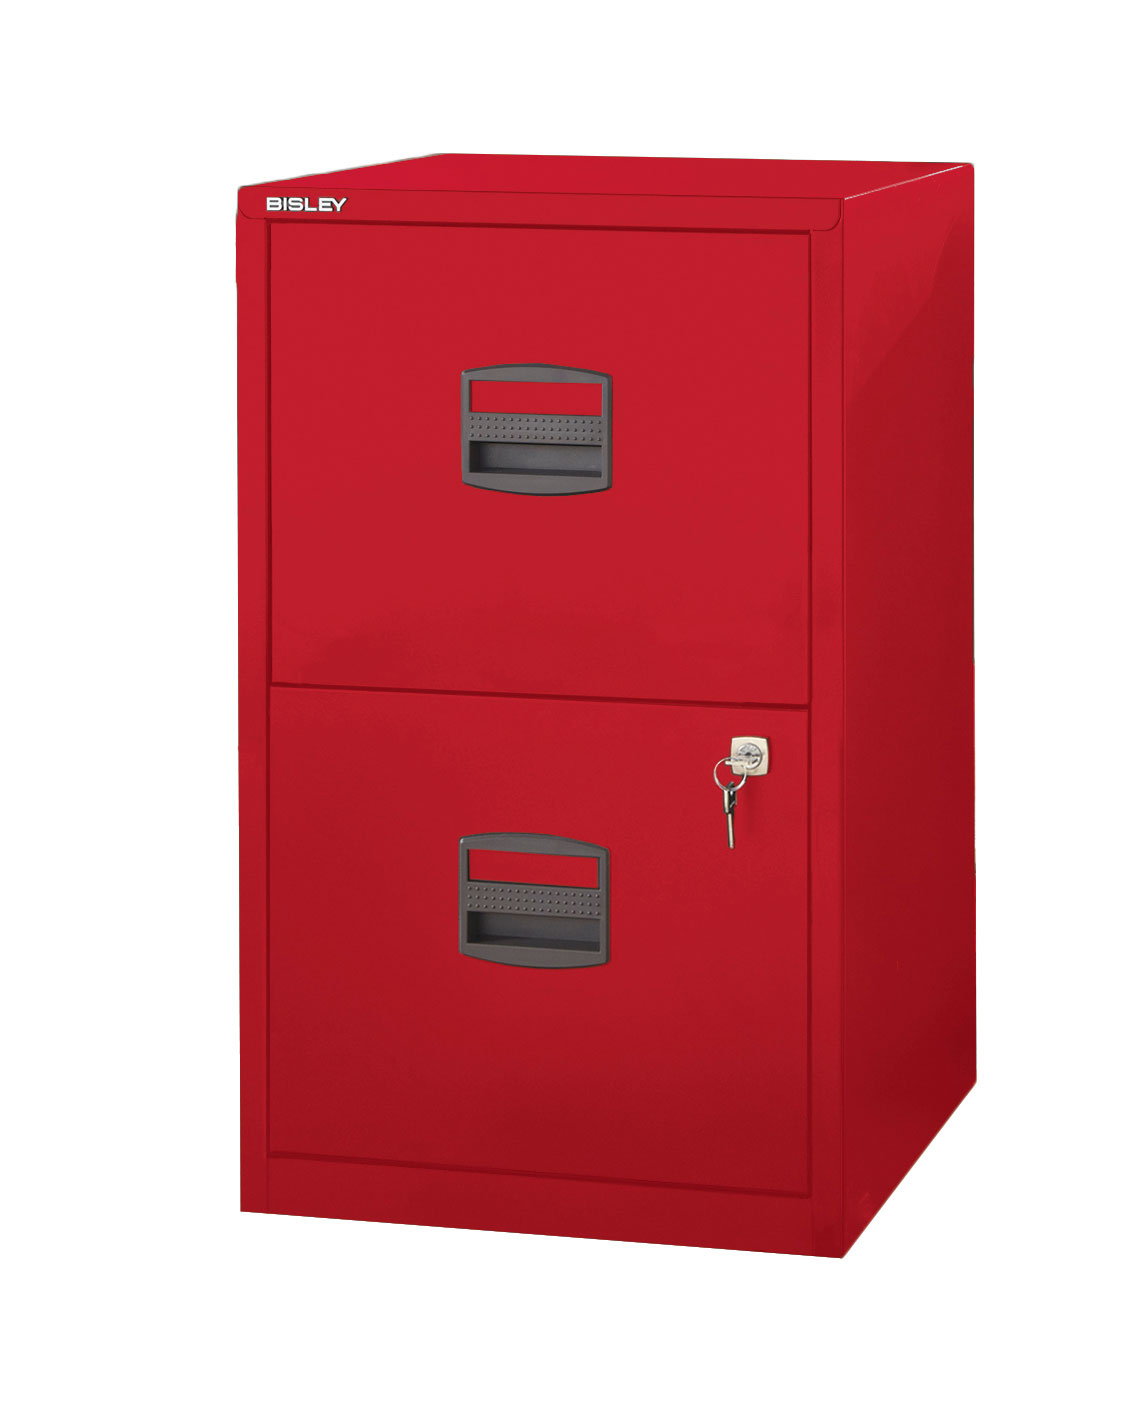 2 Drawer File Cabinets Image